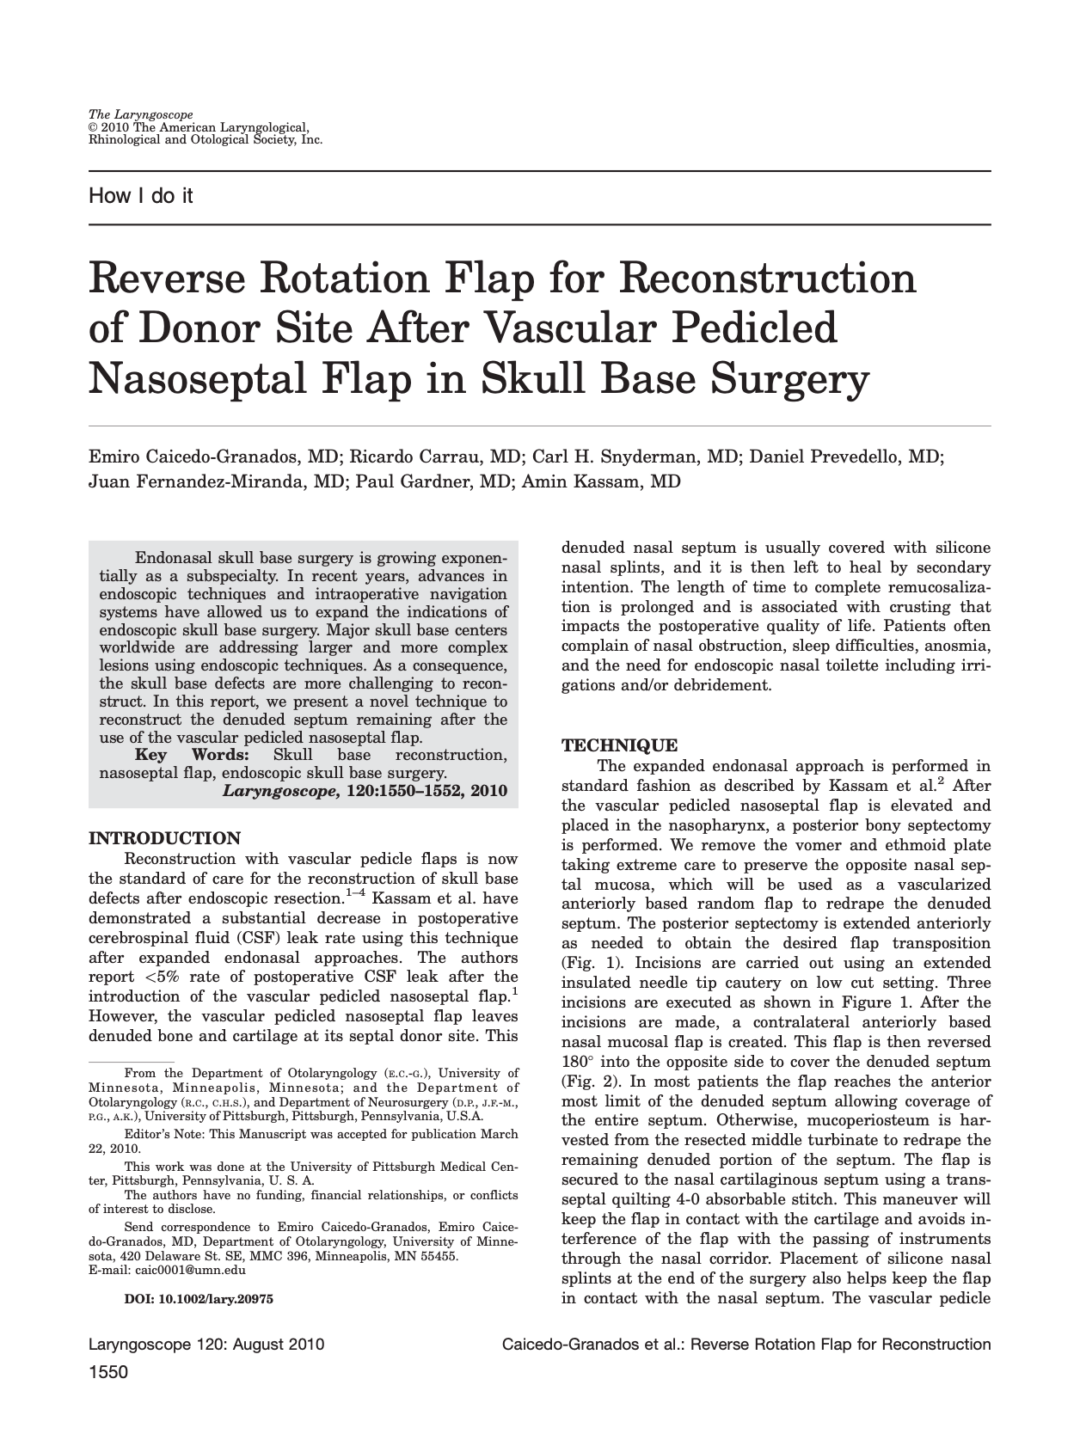 Reverse Rotation Flap for Reconstruction of Donor Site After Vascular Pedicled Nasoseptal Flap in Skull Base Surgery